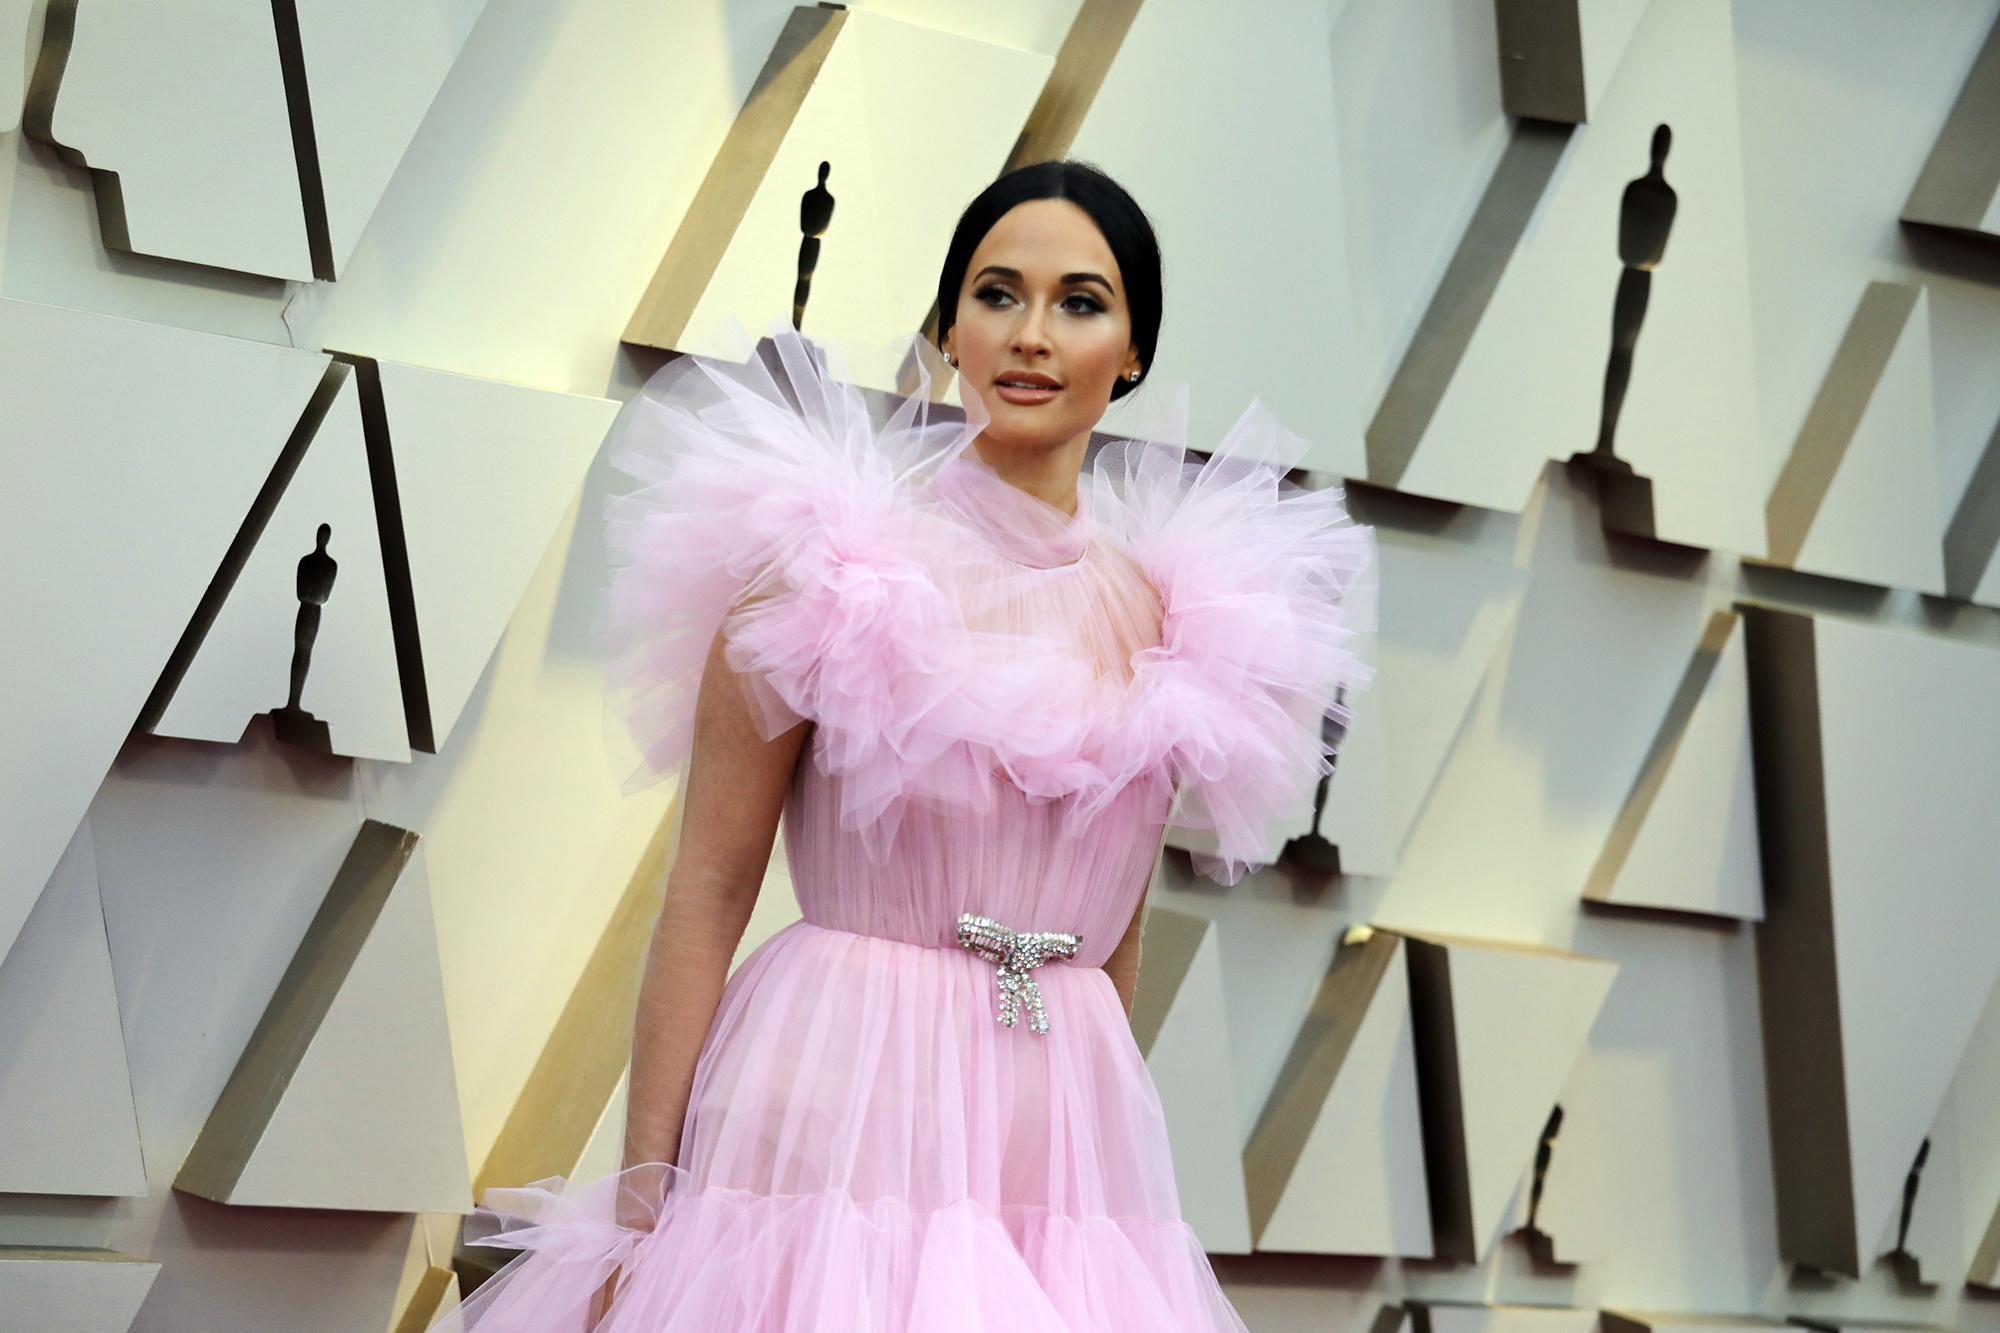 Kacey Musgraves From Grammys To Oscars To Rodeohouston